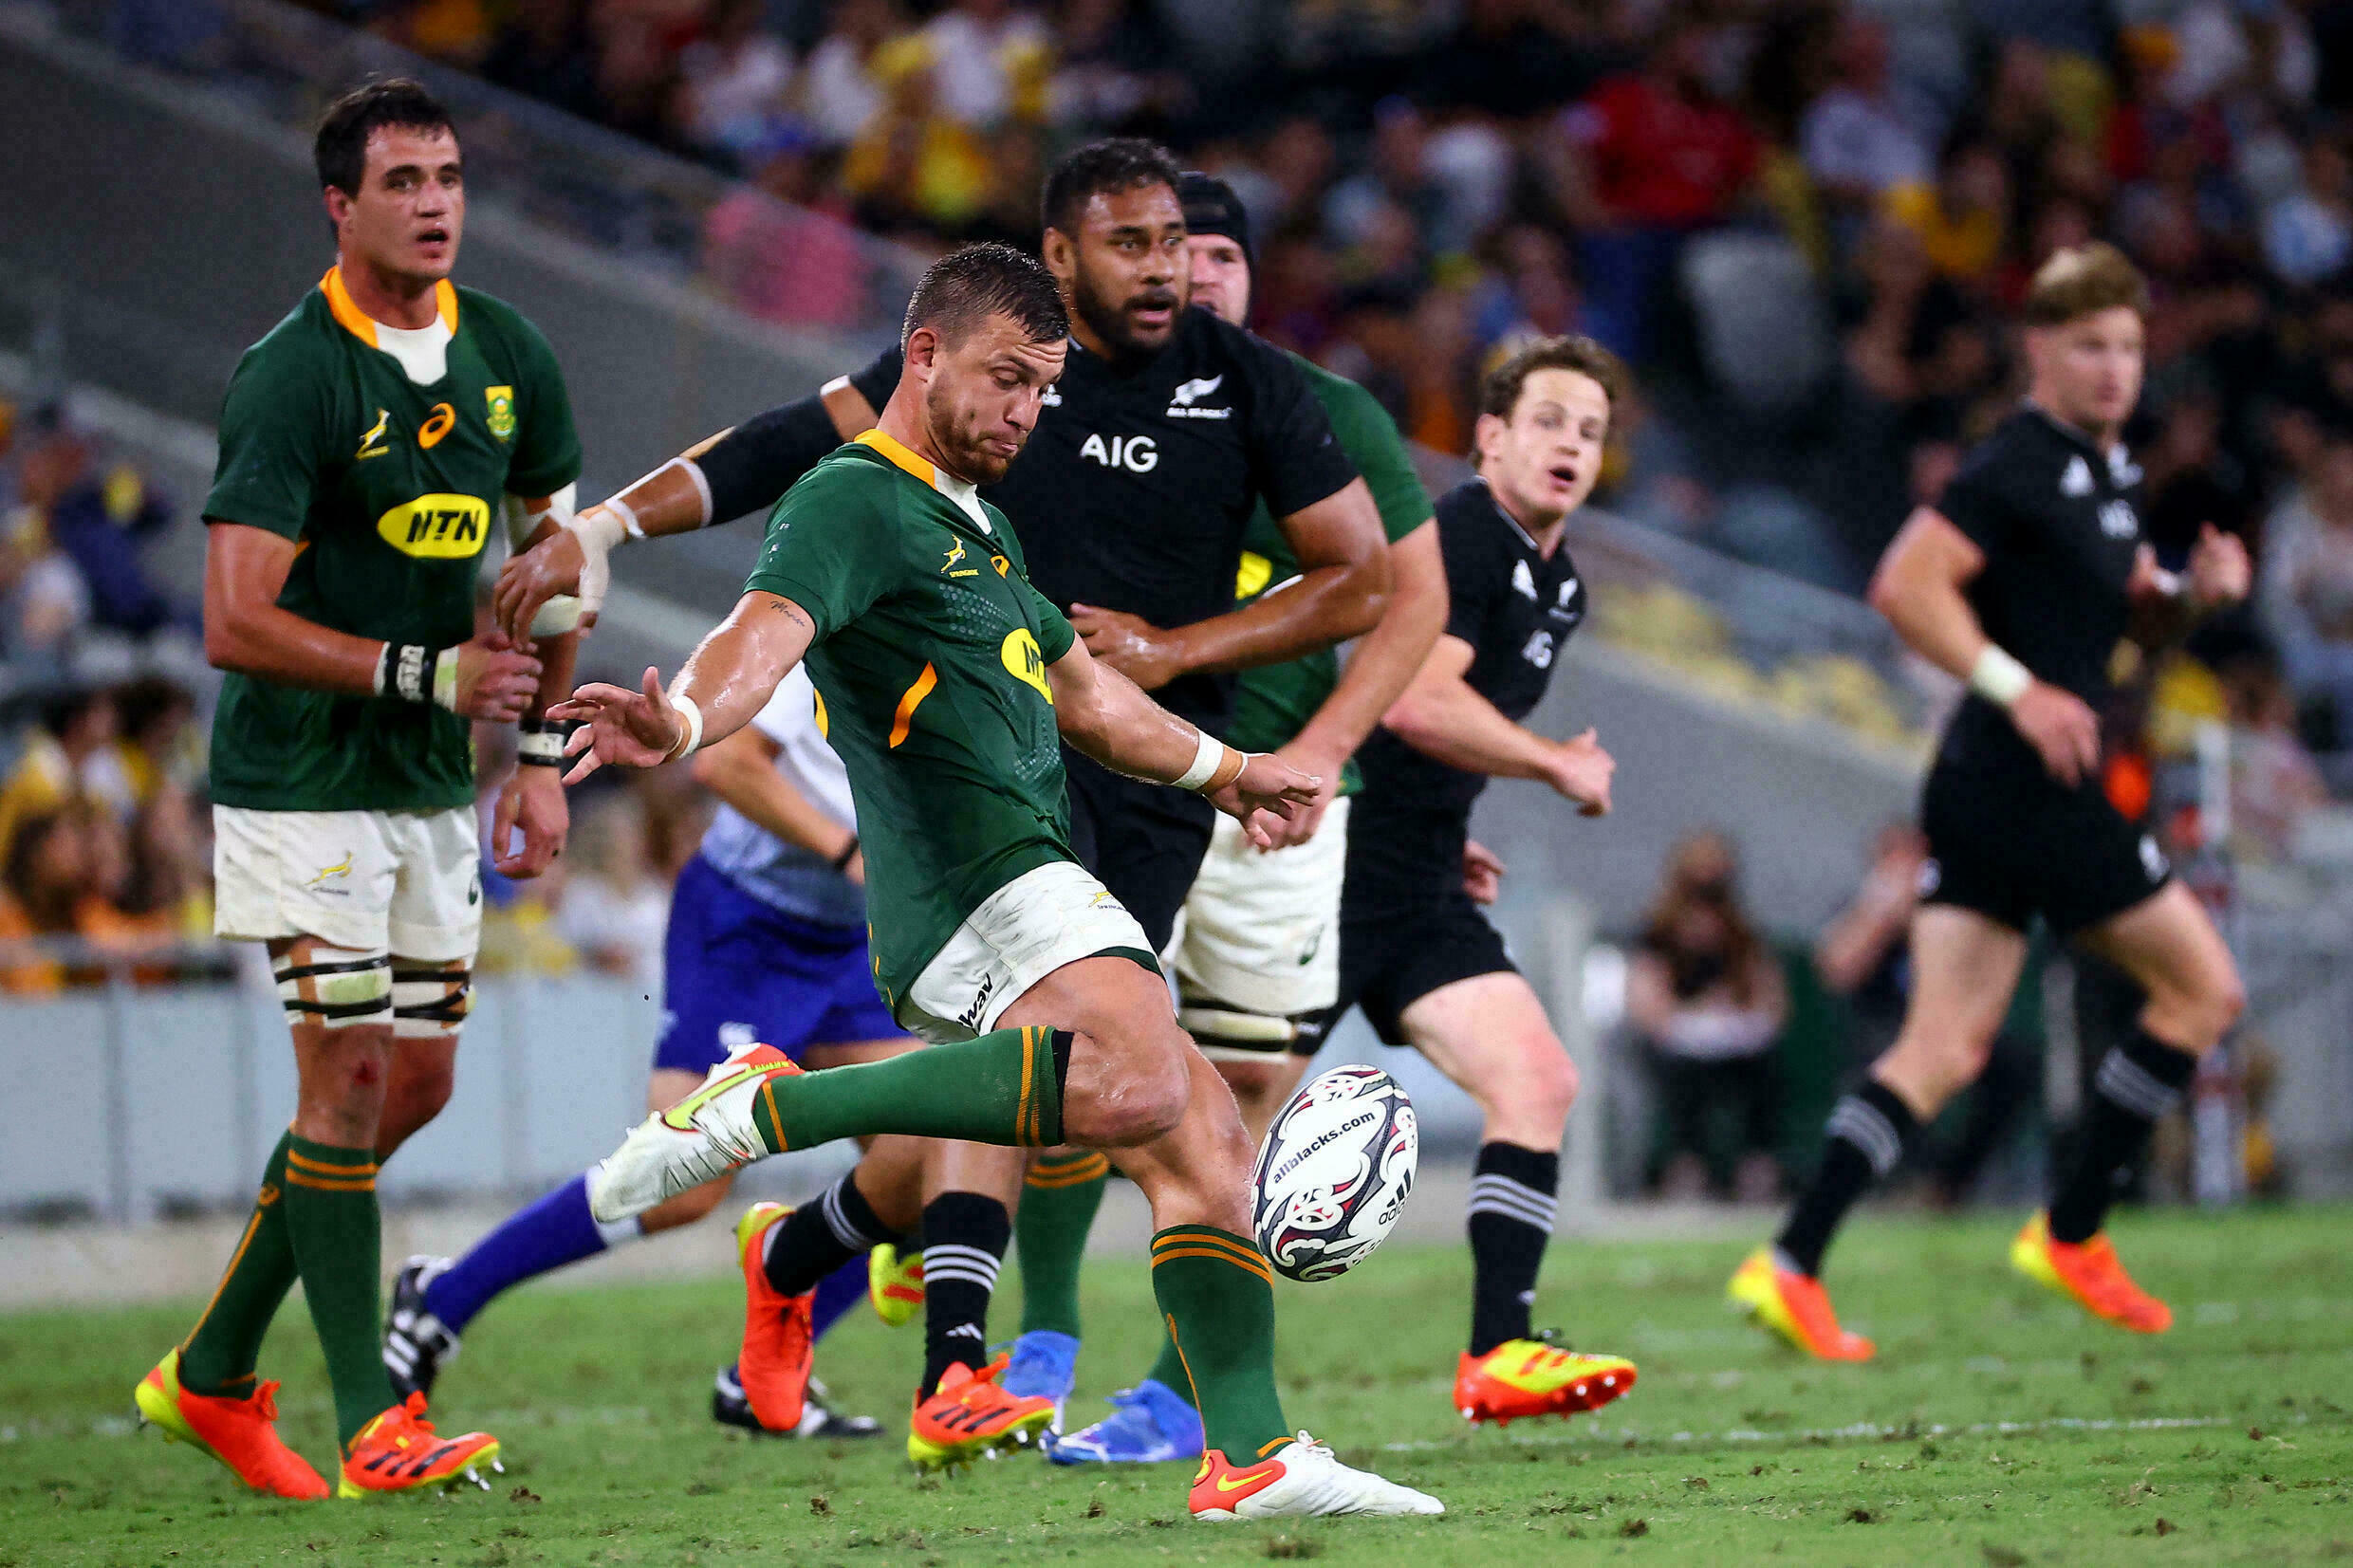 South Africa's Huntrey Pollard kicks the ball against a New Zealand rival during a game in Downsville (Australia) on September 25, 2021.